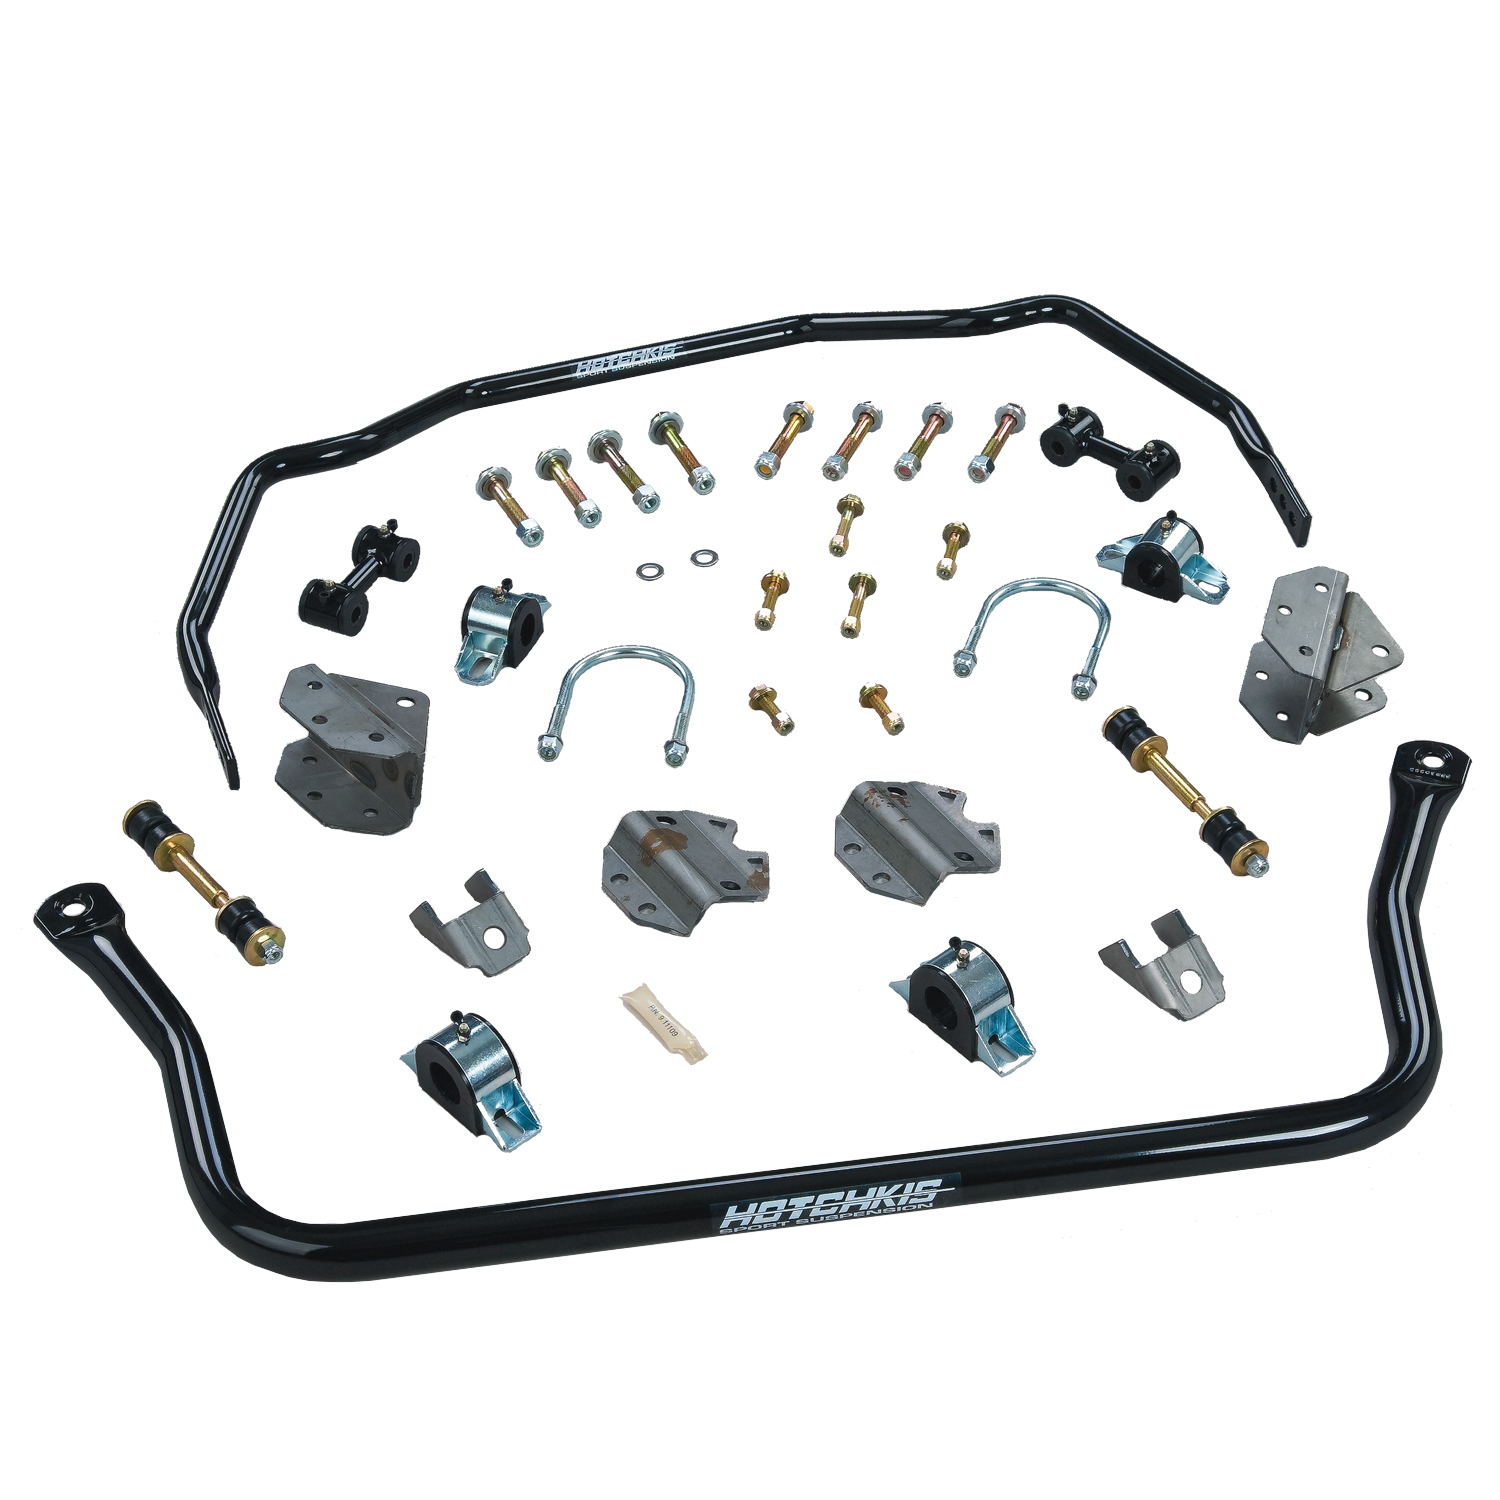 1967-1972 Dodge A-Body Sport Sway Bar Set from Hotchkis Sport Suspension